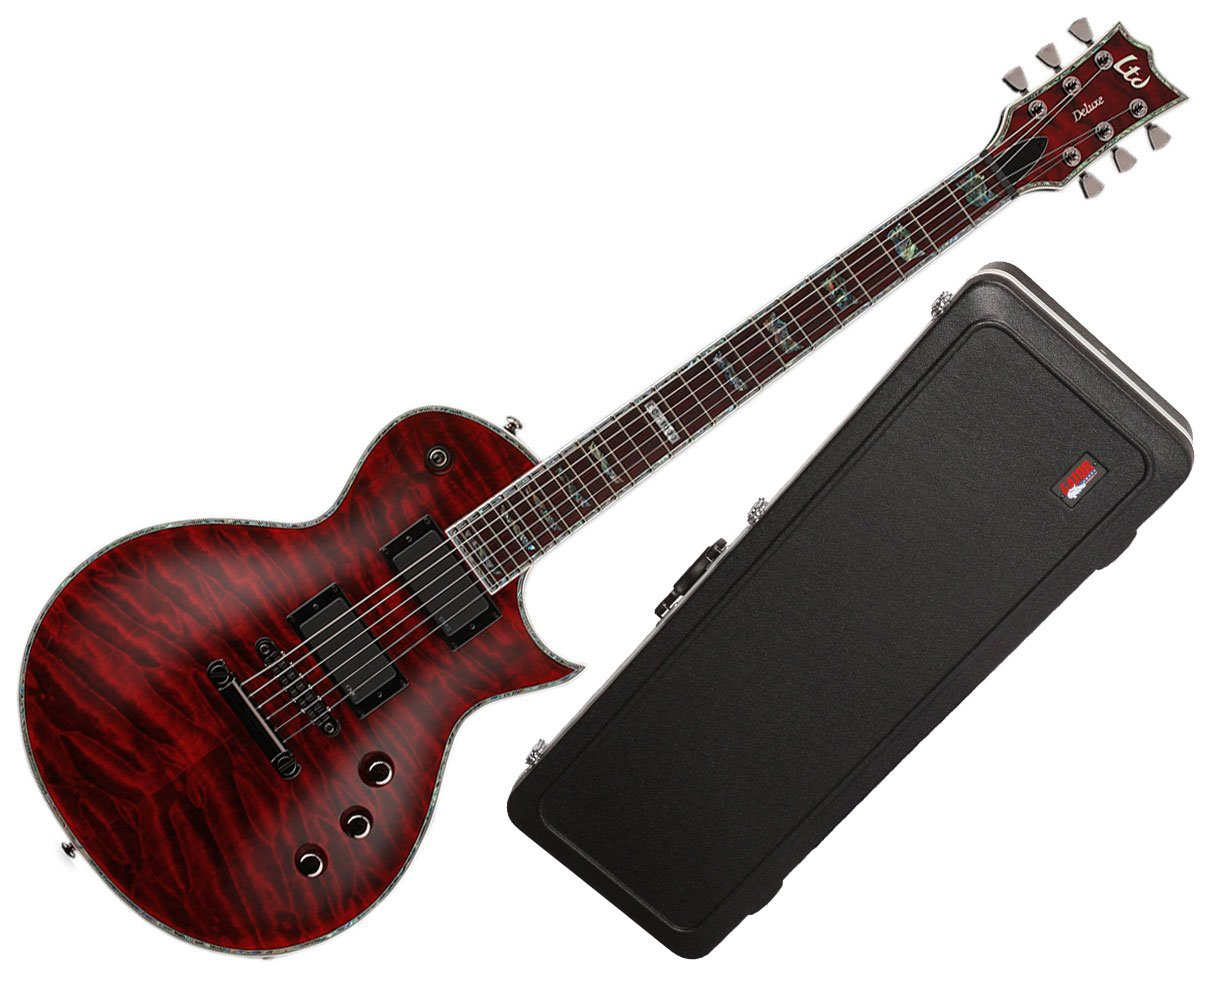 Amazon.com: ESP LTD EC-1000 Deluxe Series Electric Guitar with Gator Deluxe  ABS Case: Musical Instruments